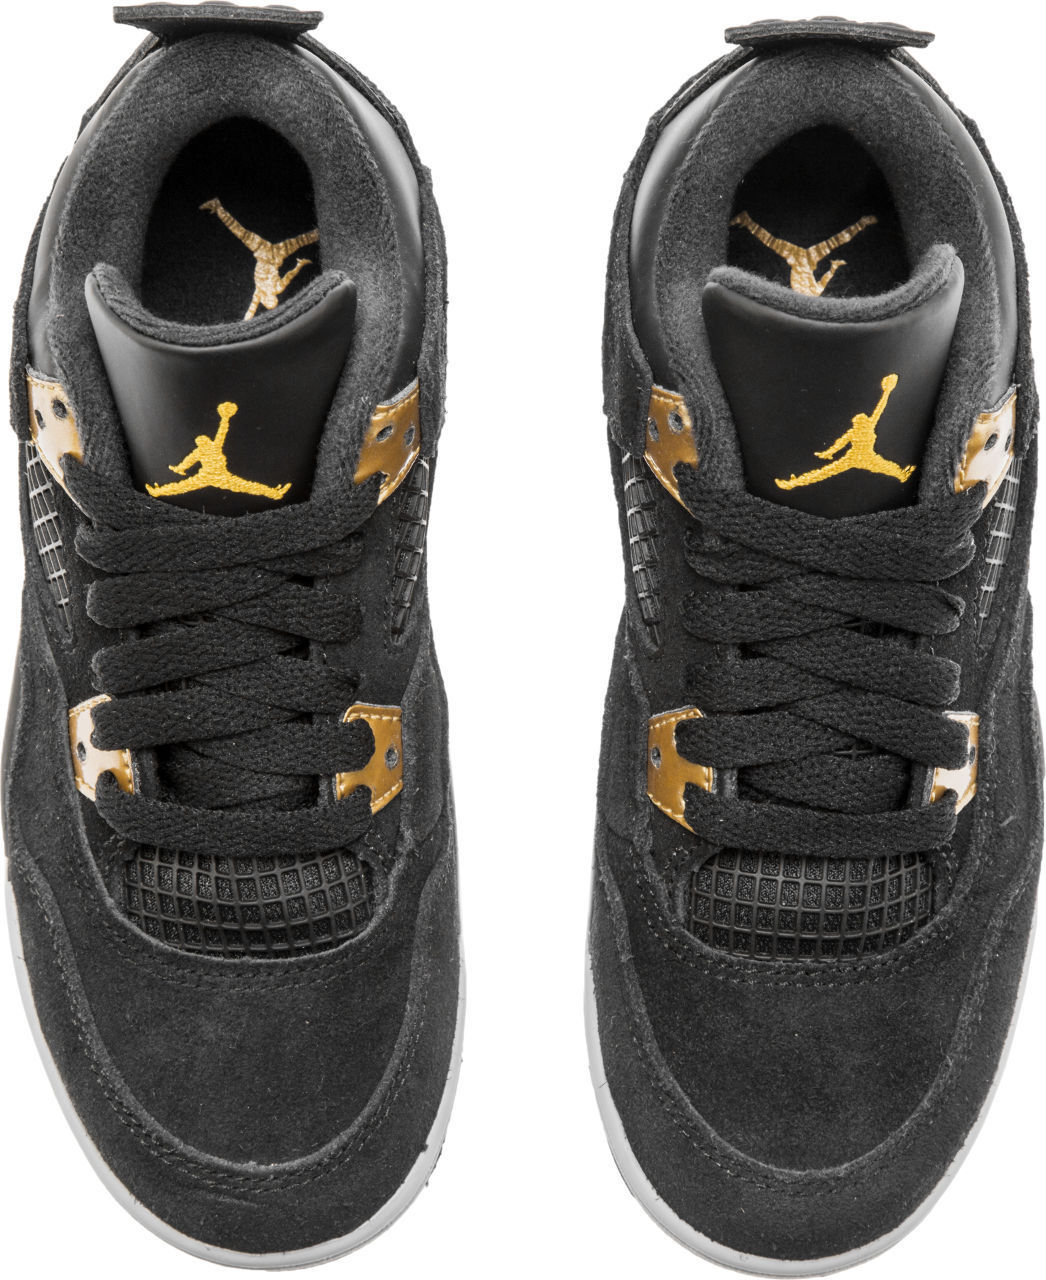 SS17 AIR JORDAN RETRO 4 ROYALTY PS 16.5-22cm 送料無料